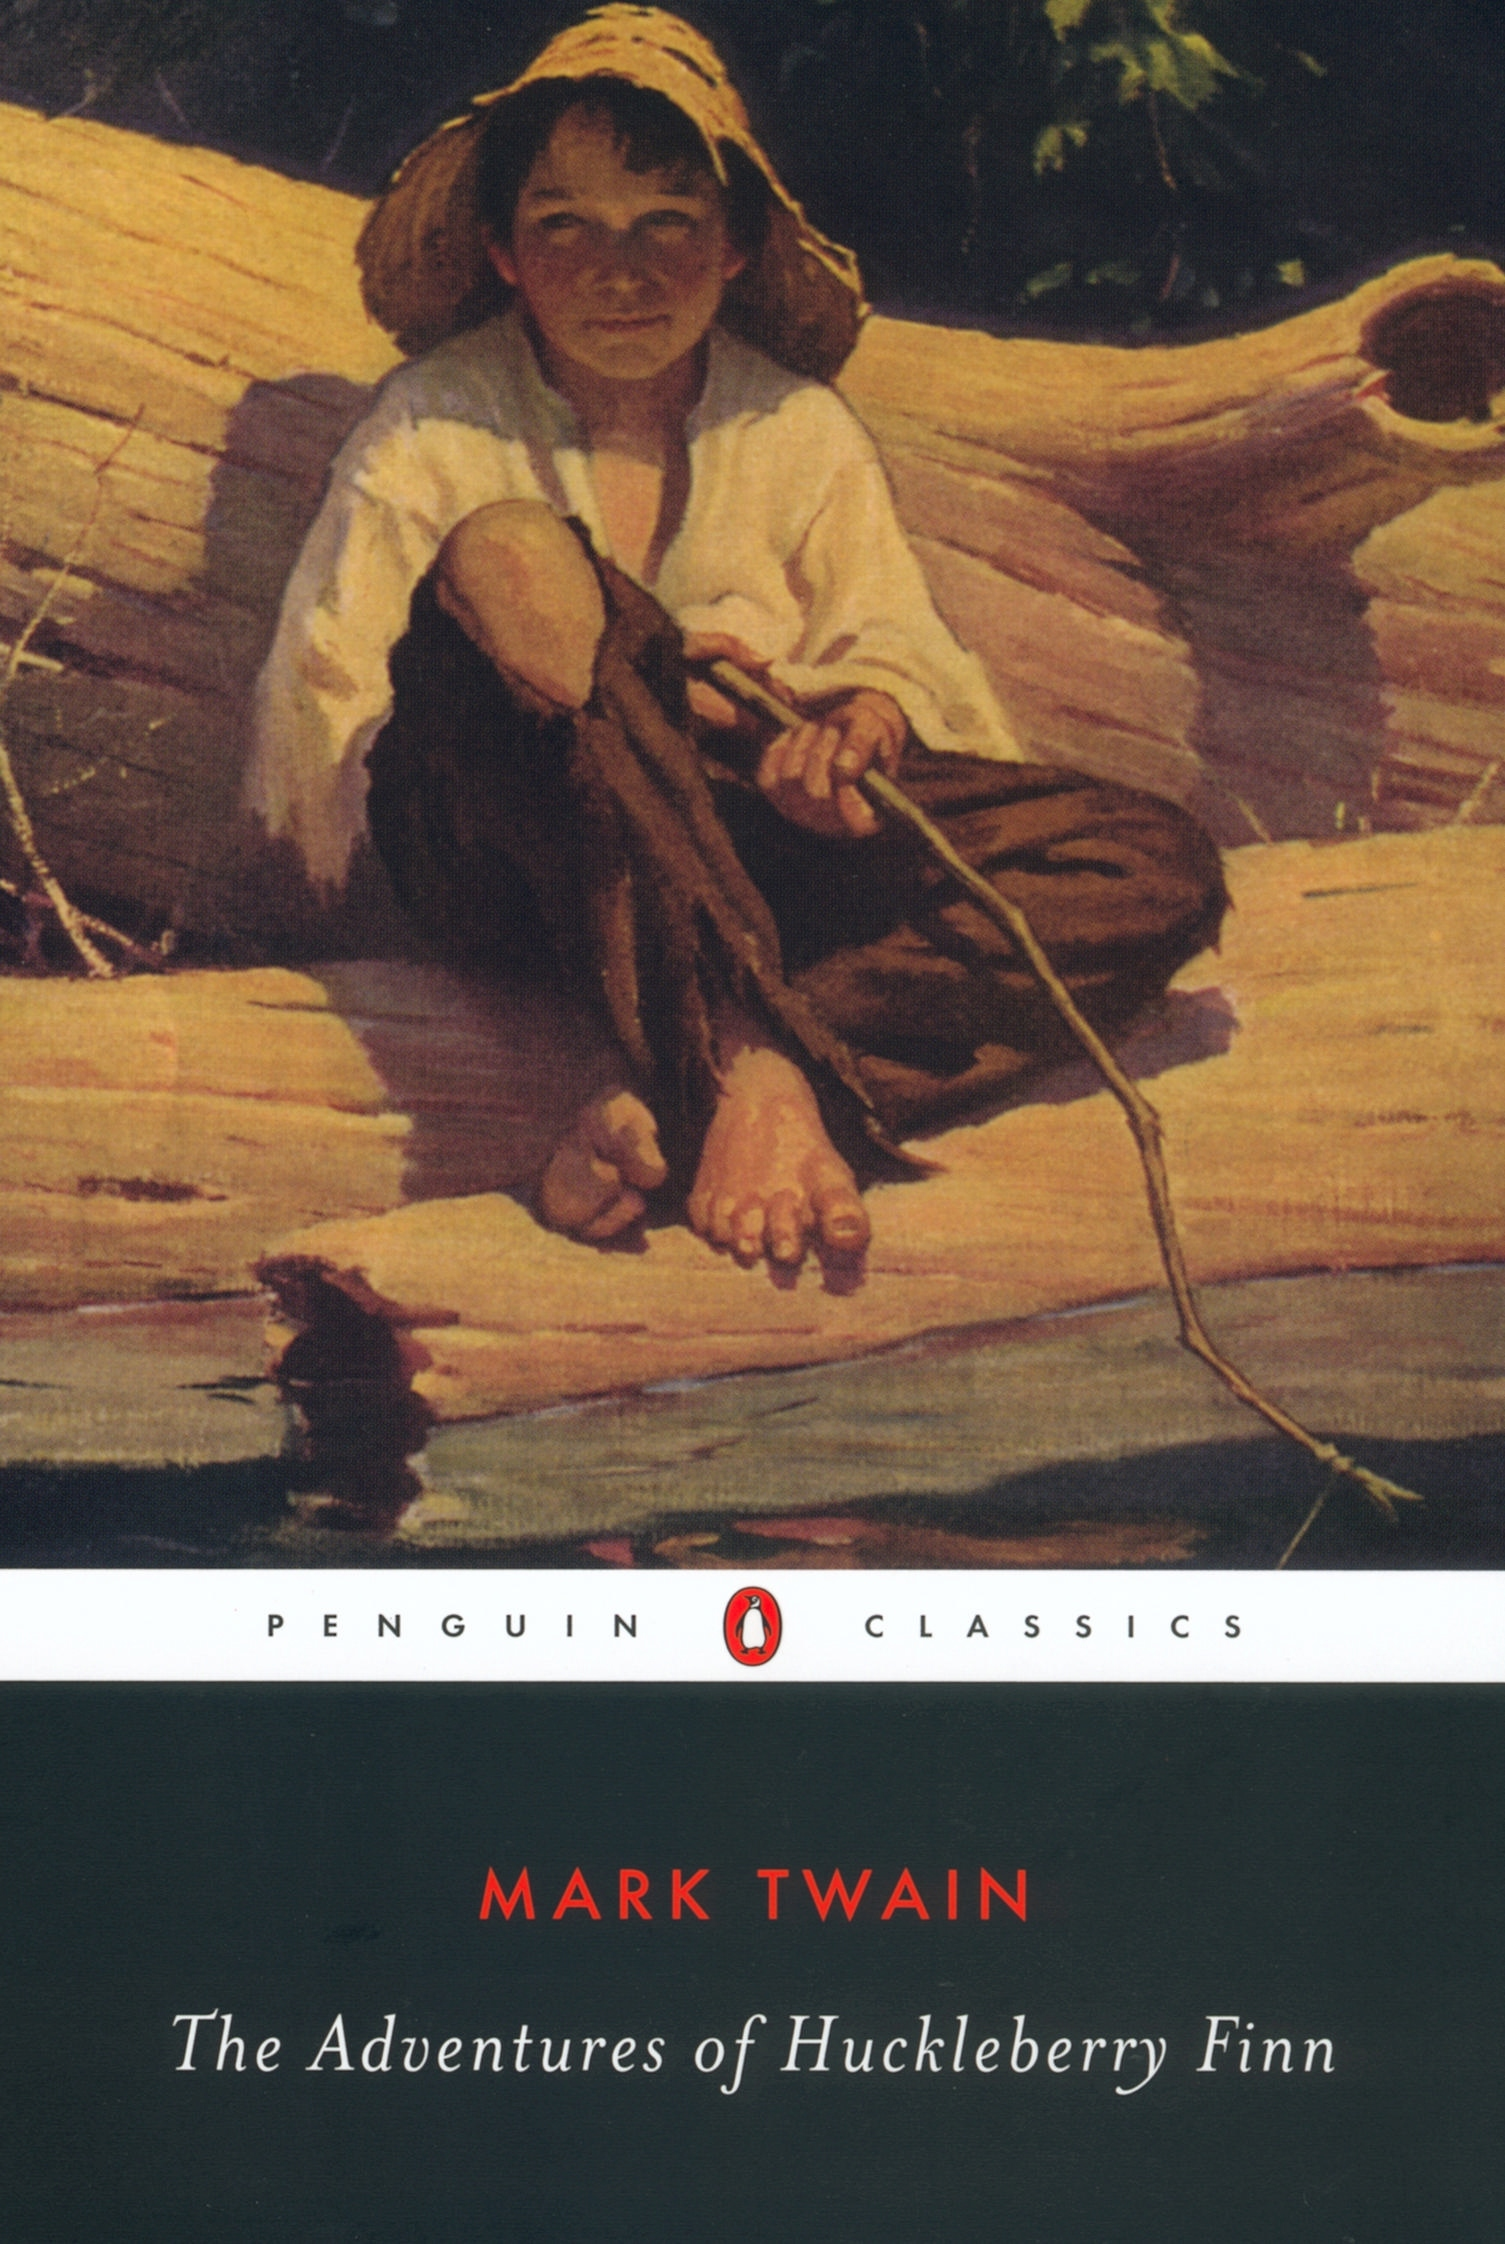 a journey into self discovery in the adventures of huckleberry finn and catcher in the rye Analyses or discusses a particular a journey into self discovery in the adventures of huckleberry finn and catcher in the rye issue.